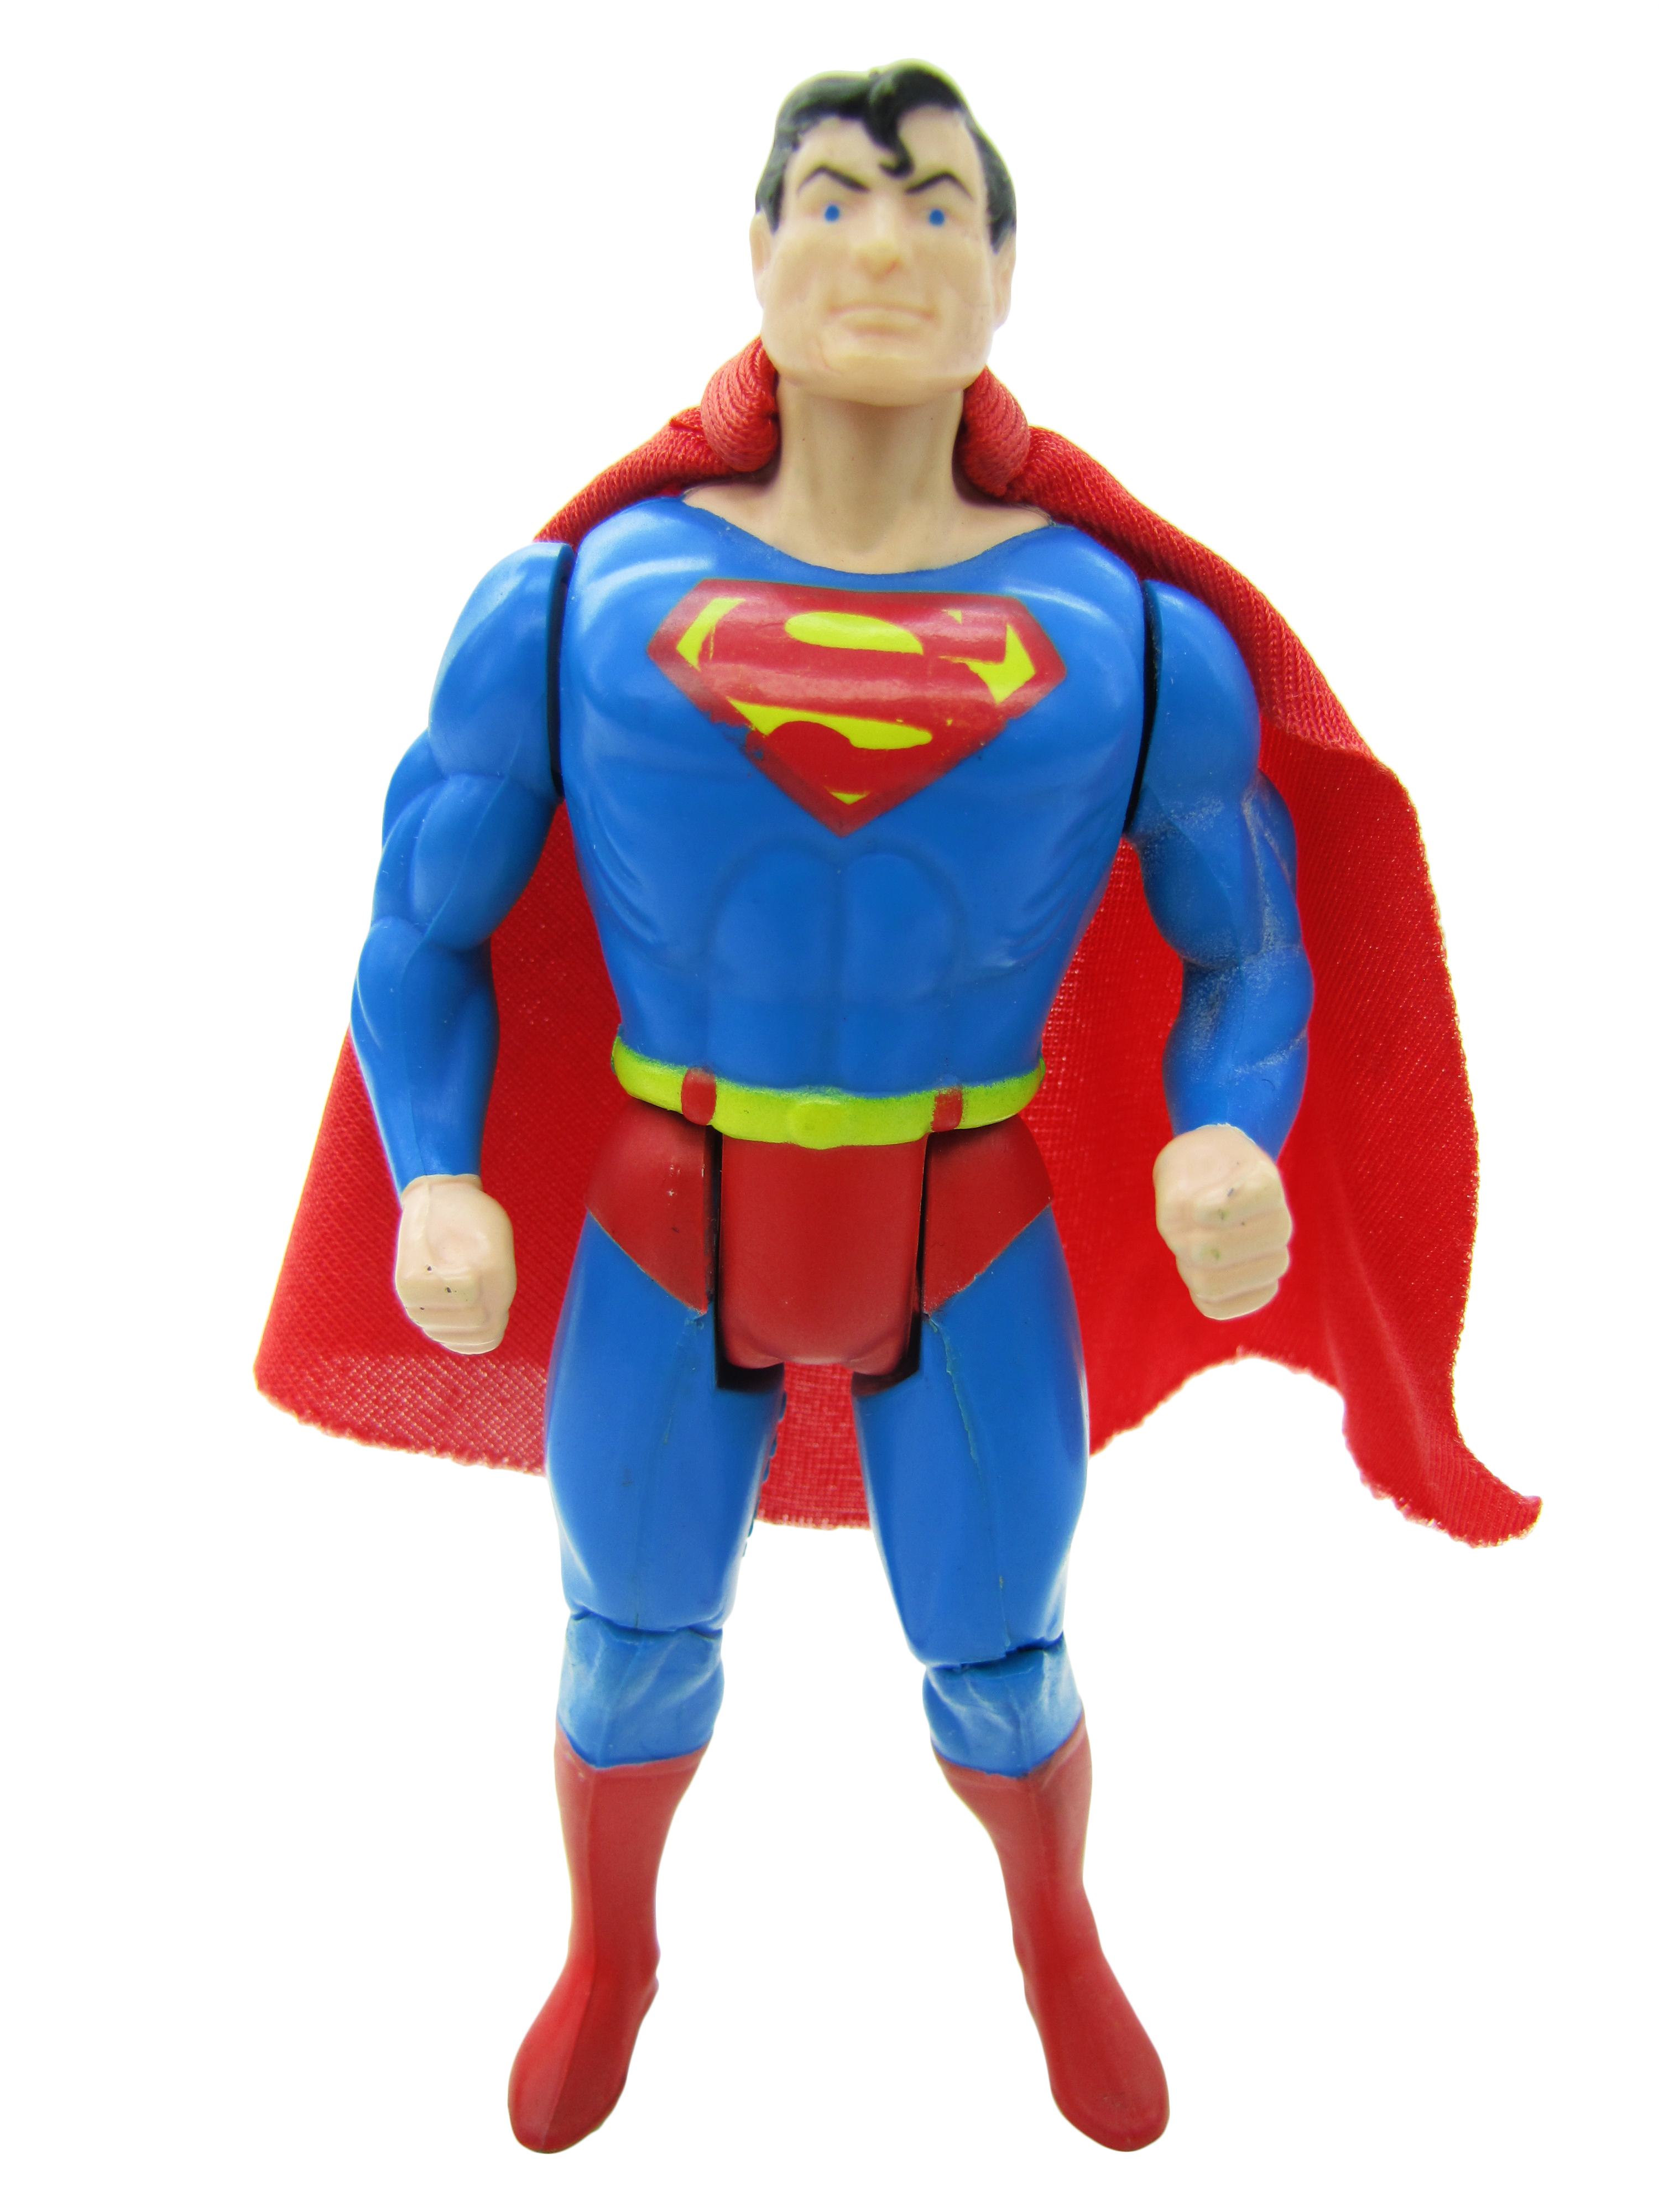 1984 DC Super Powers Collection SUPERMAN Complete Mint Condition